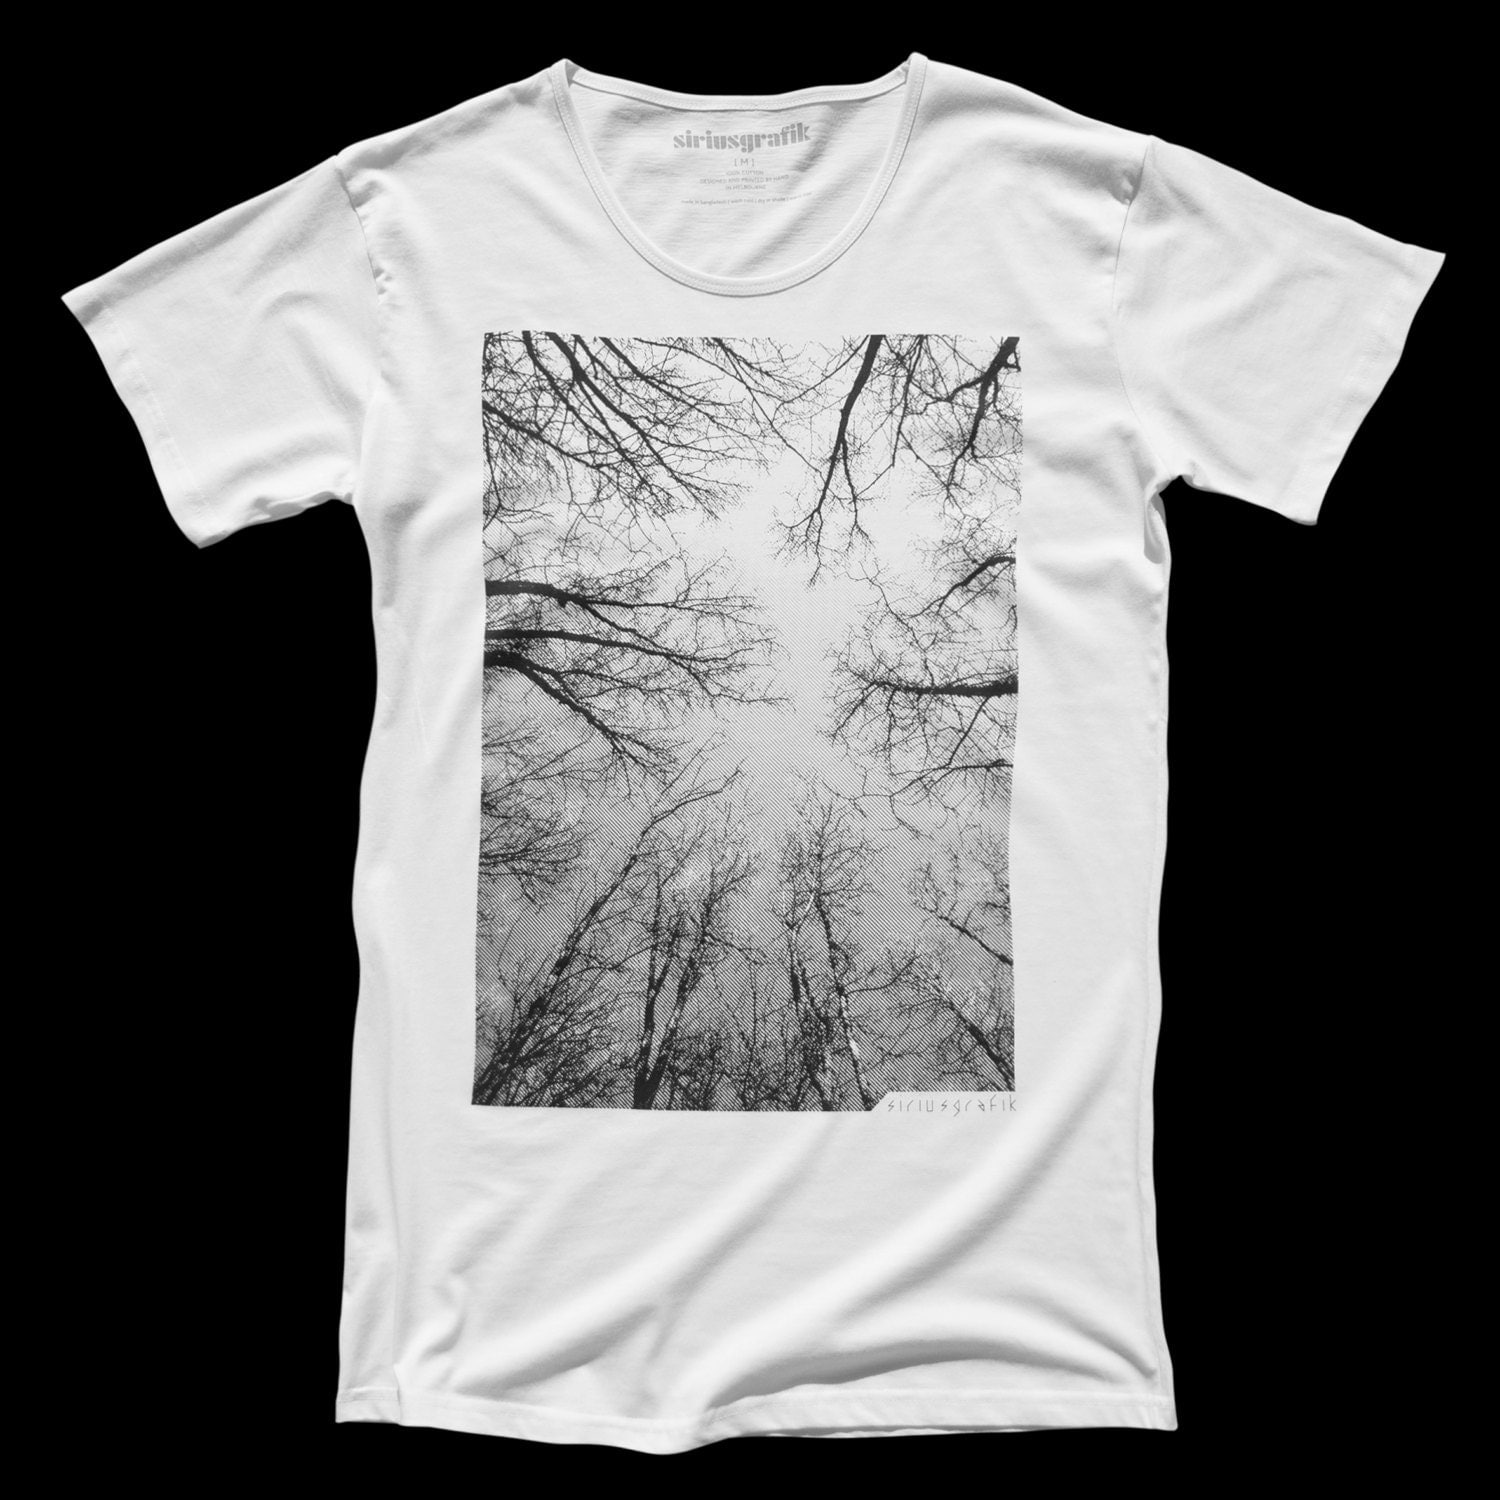 Mens Tshirts Tree Tee THE FOREST Hand Pulled Screen Print on White Mens Scoop Neck Tee size S, M, L - Free Shipping - - SiriusGrafik